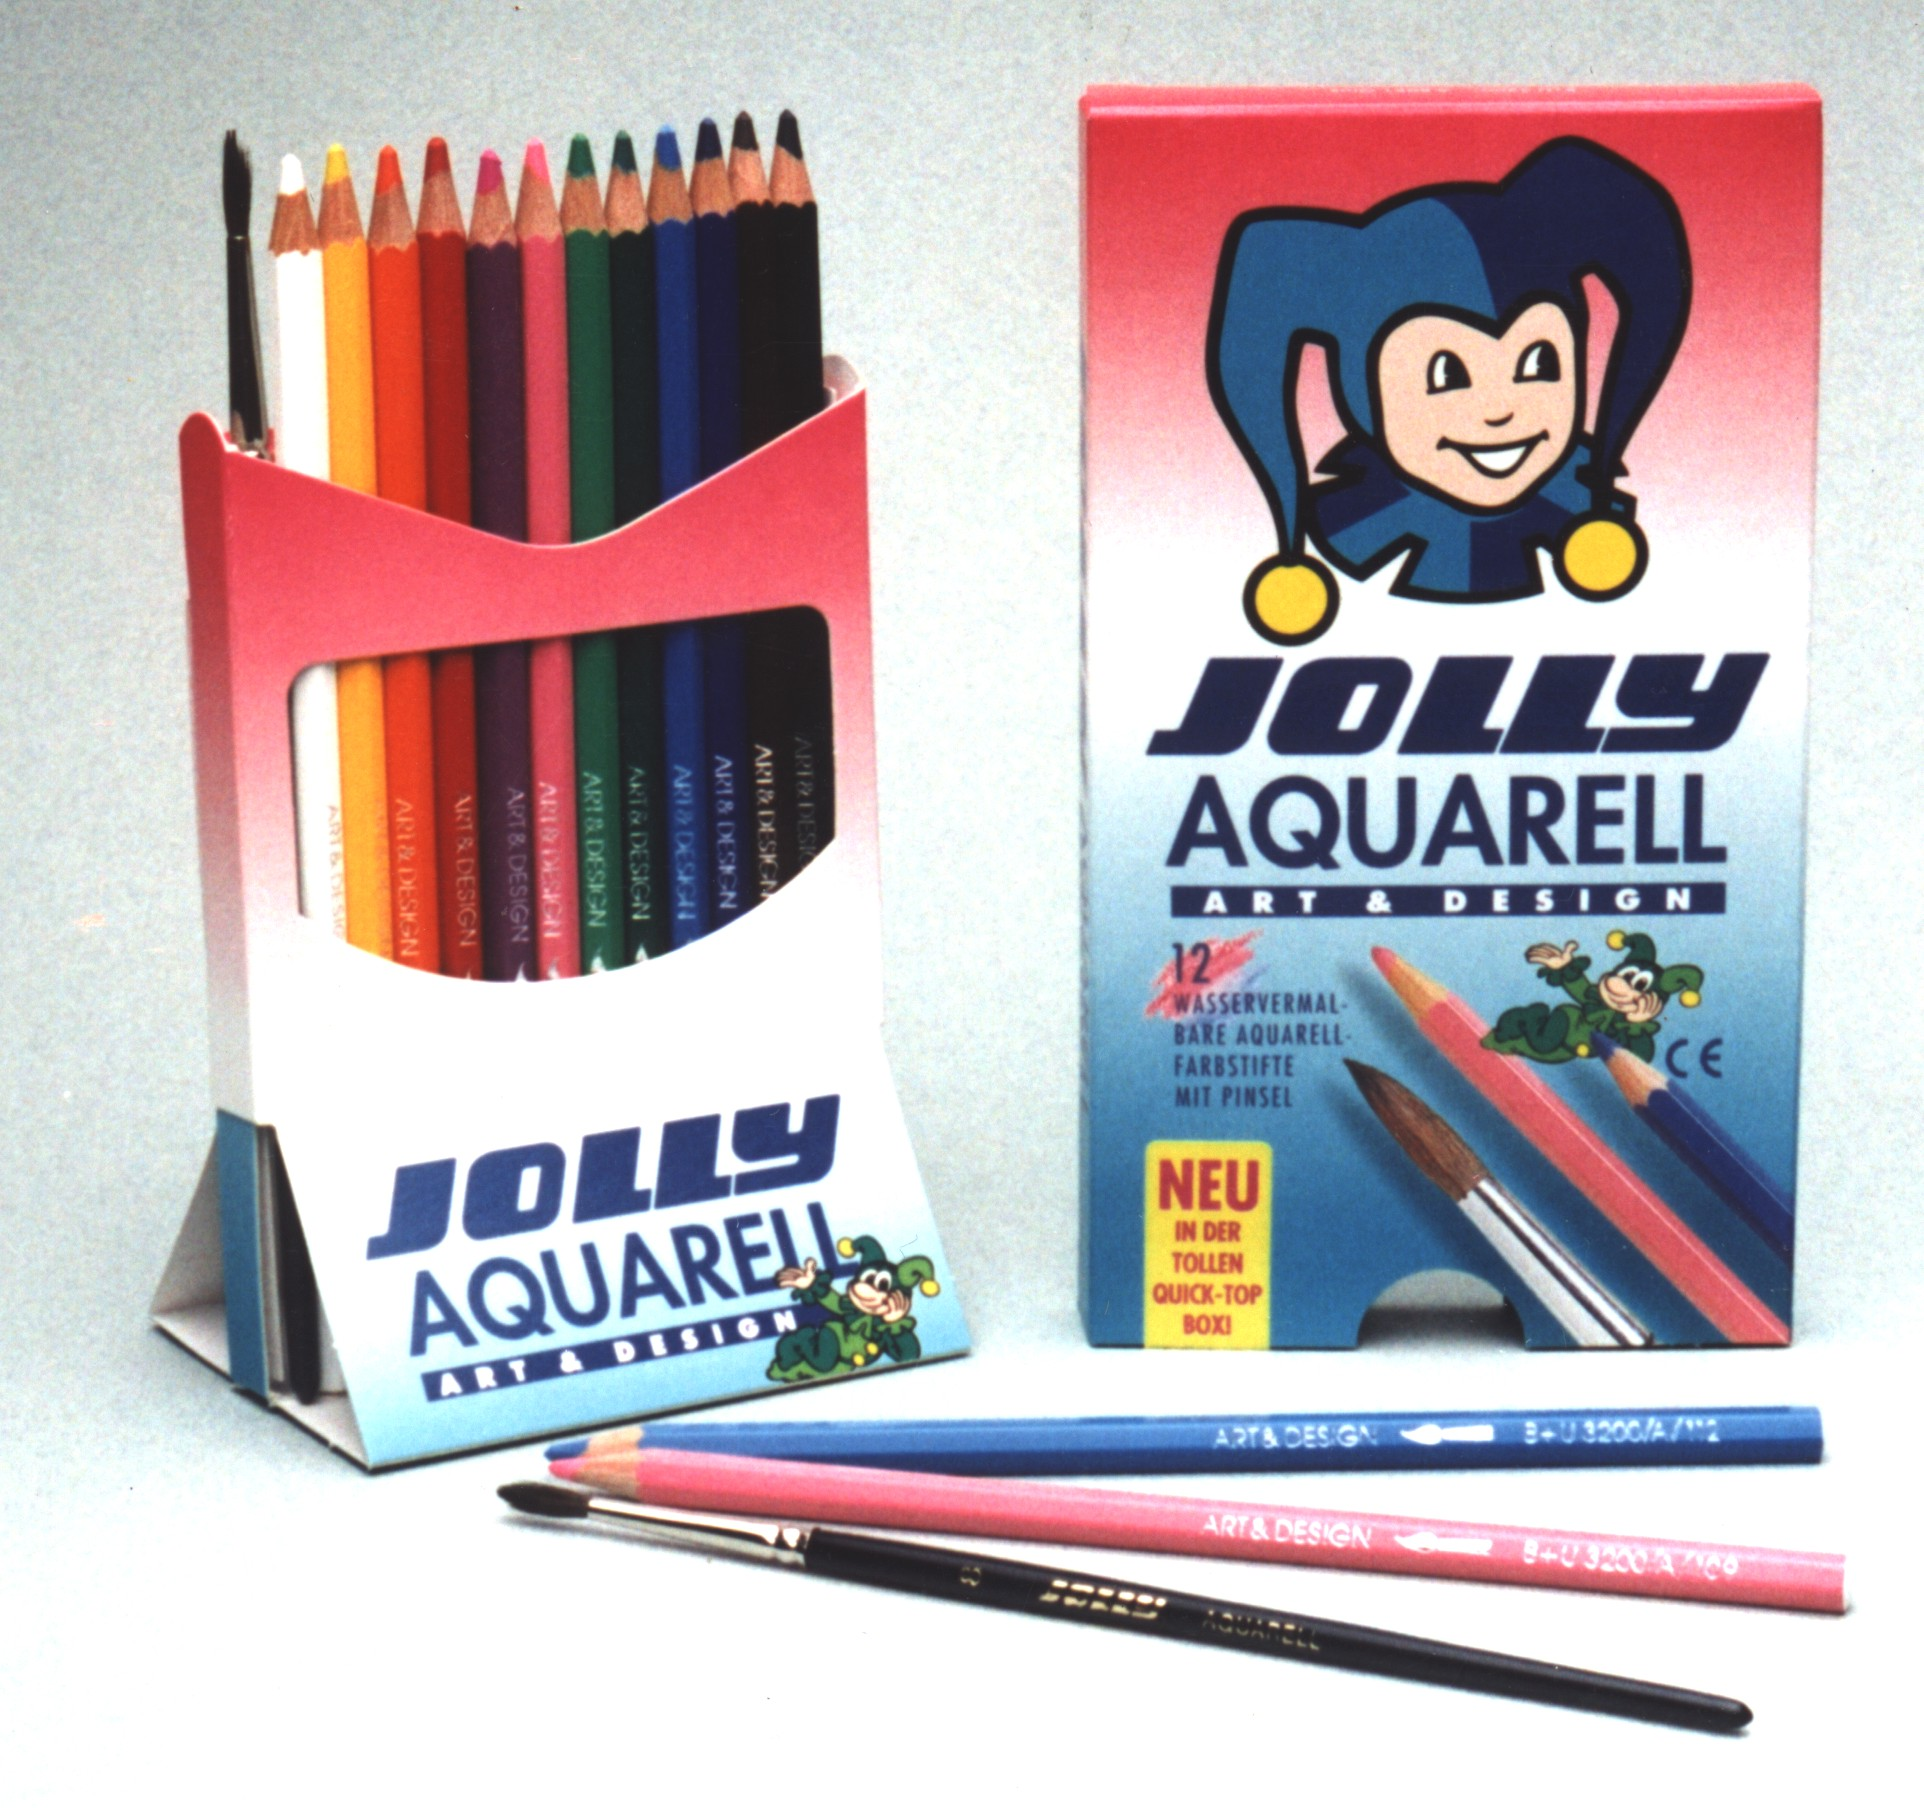 Jolly Aquarell